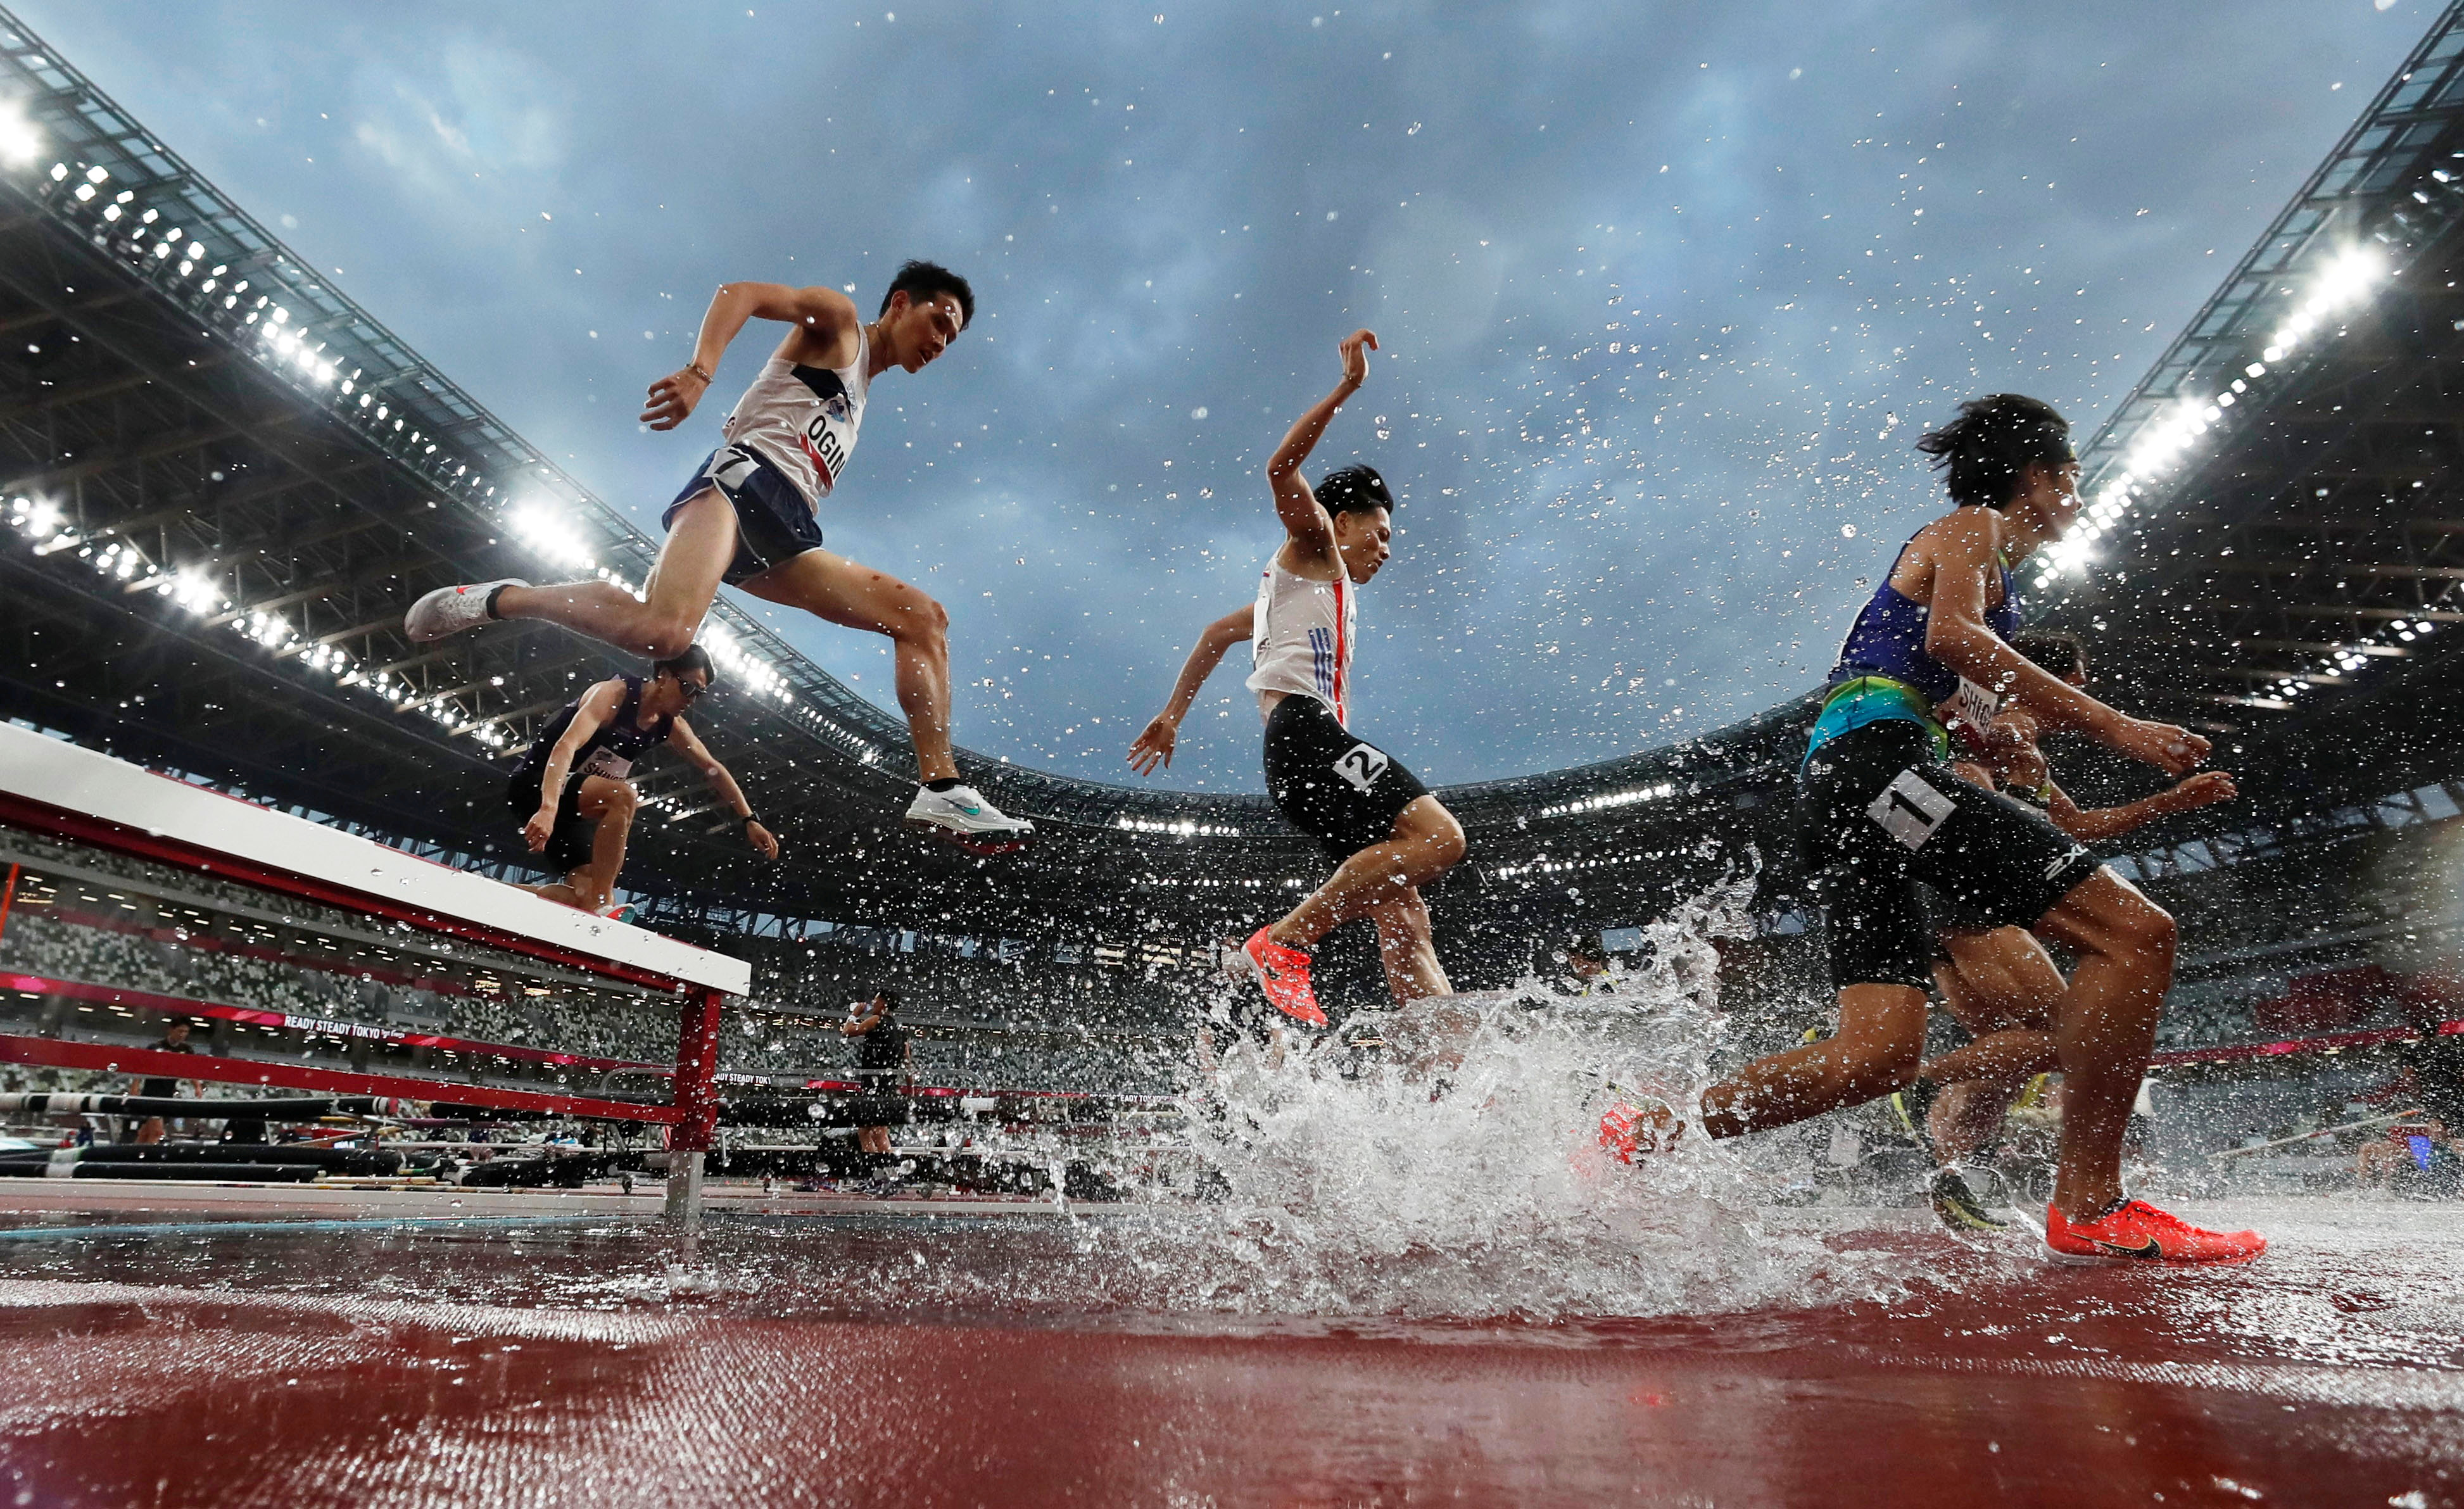 Olympics - Tokyo 2020 Olympic Games Test Event - Athletics - Olympic Stadium, Tokyo, Japan - May 9, 2021 General view during the men's 3000m Steeplechase final REUTERS/Issei Kato